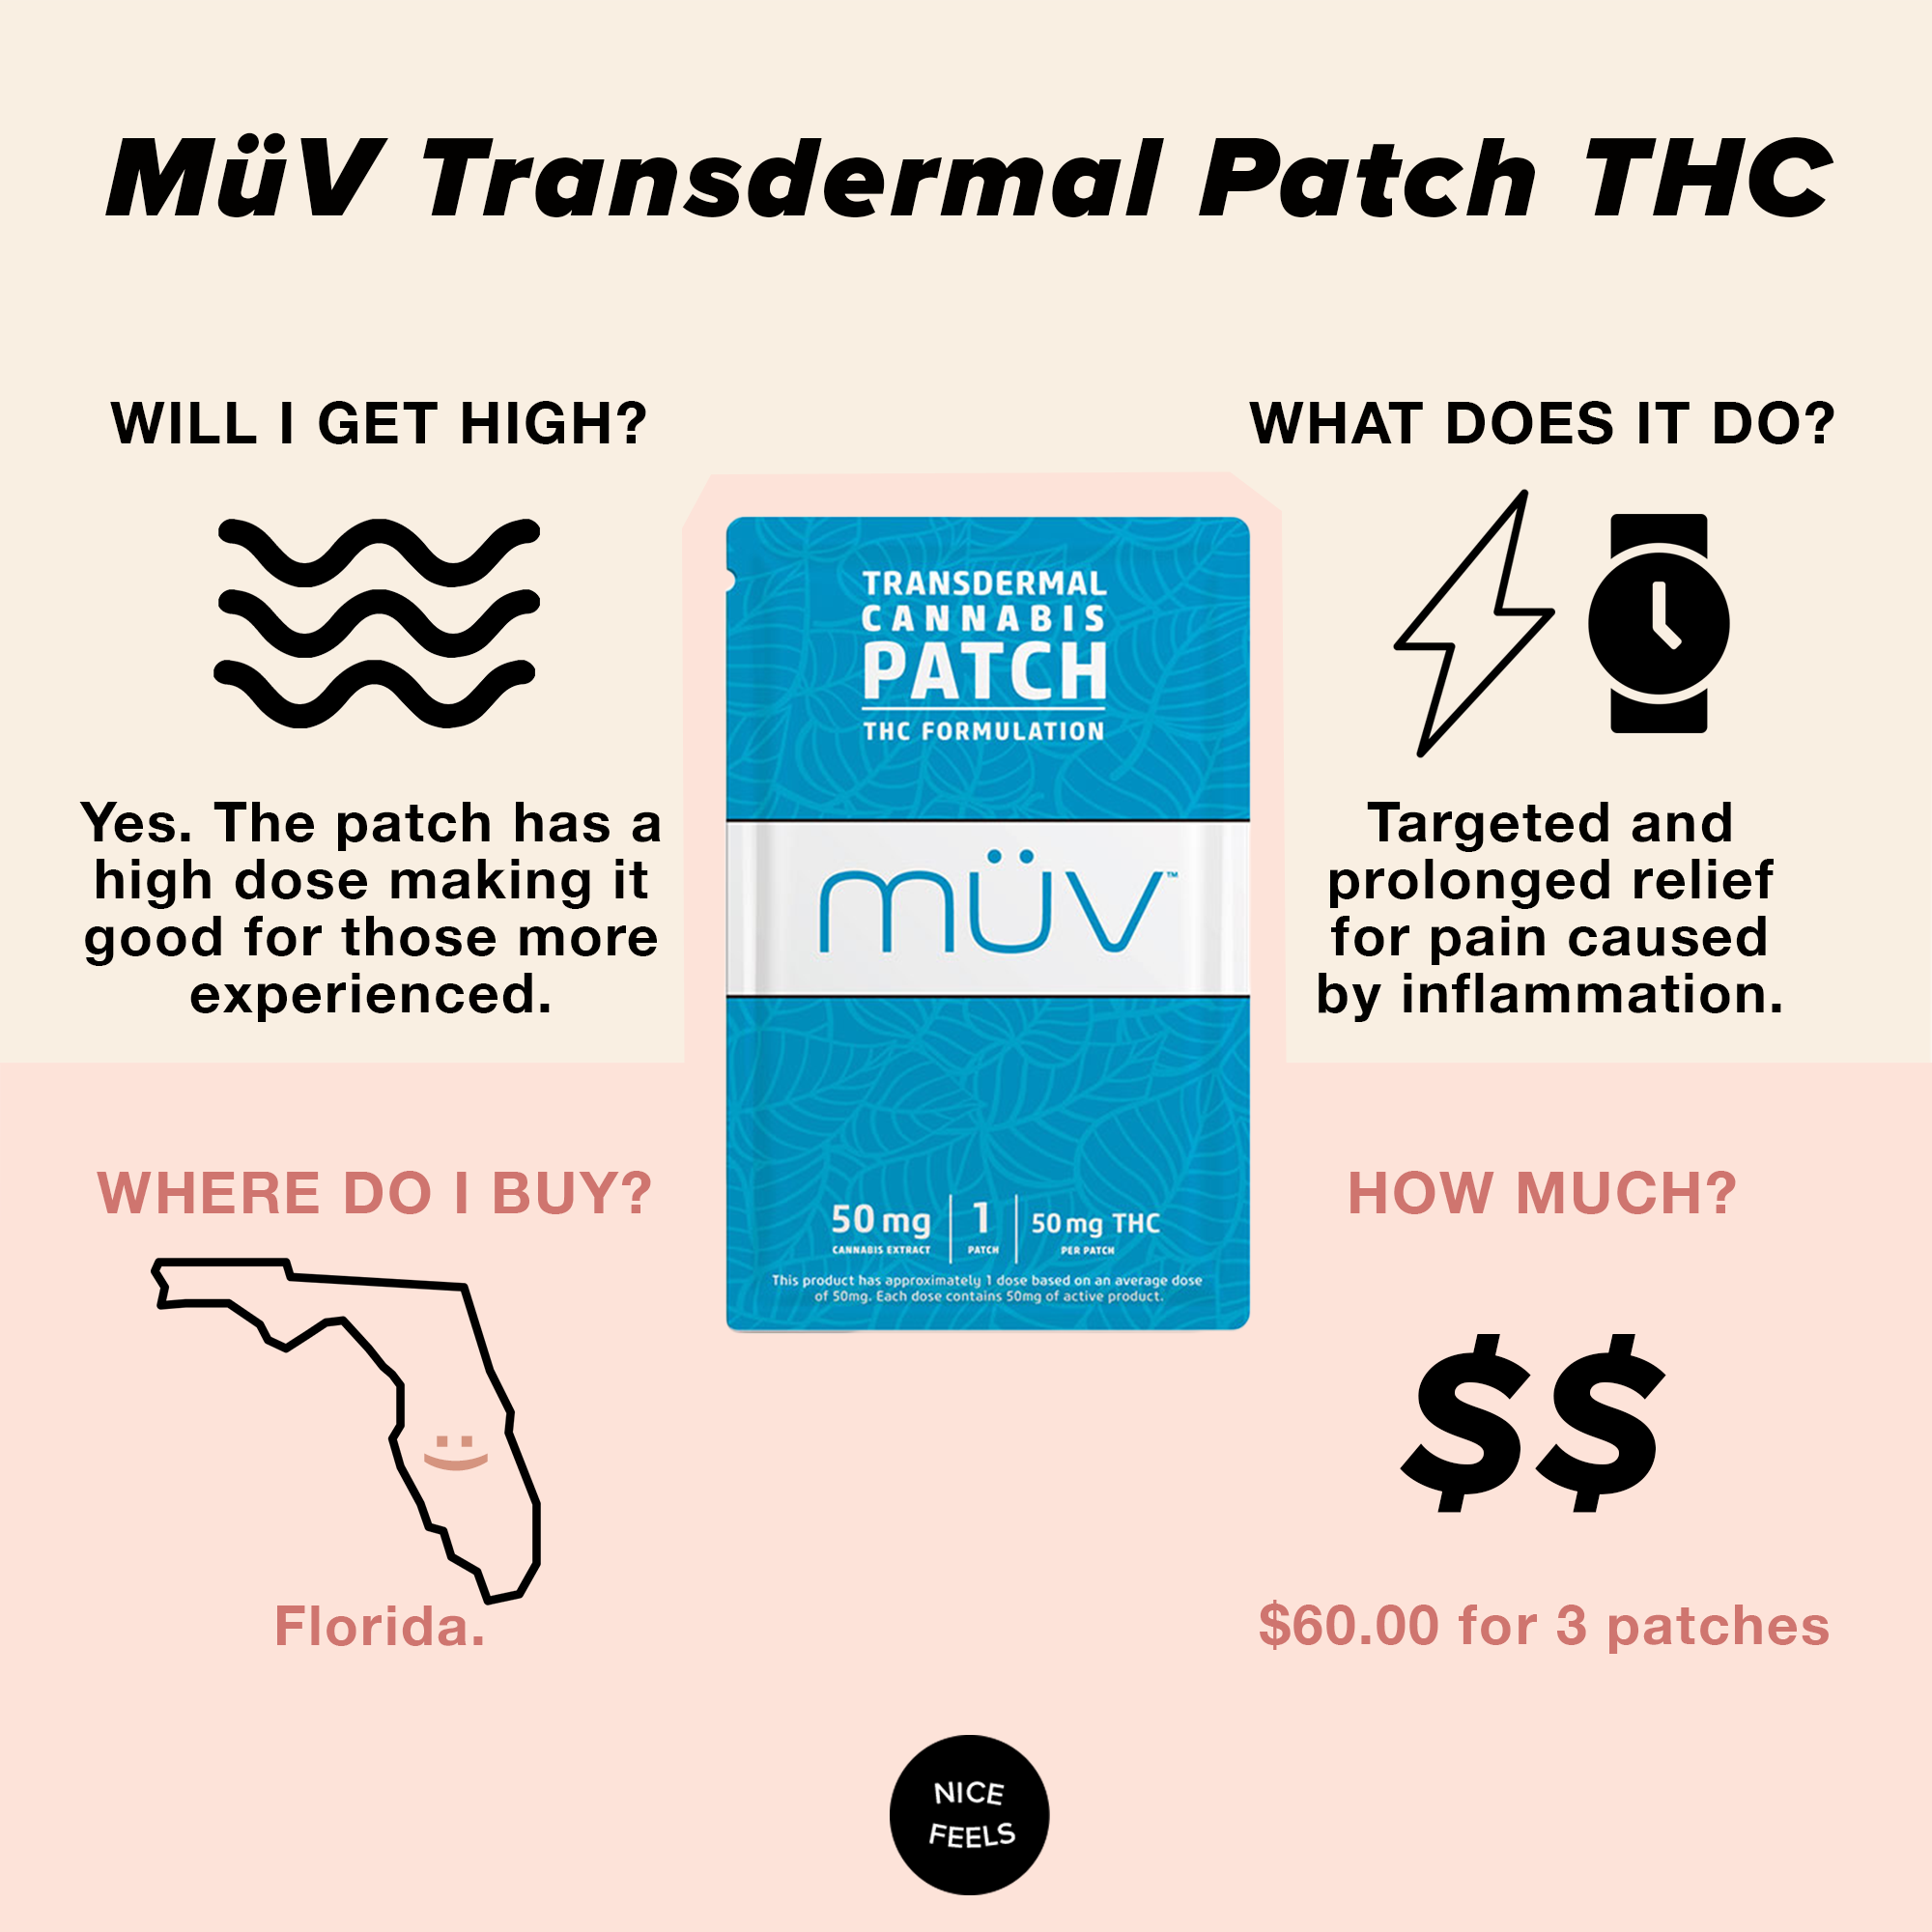 3. MüV Transdermal Patch THC - If your pain levels are high and you need something a bit stronger, MüV patches are some of the most talked-about for pain relief because of their high dose. Their 50-milligram THC patches promise 12+ hours of steady release. Remember, because this is a transdermal patch, it will get into your bloodstream and you will feel some psychoactive effects due to the high dosing.